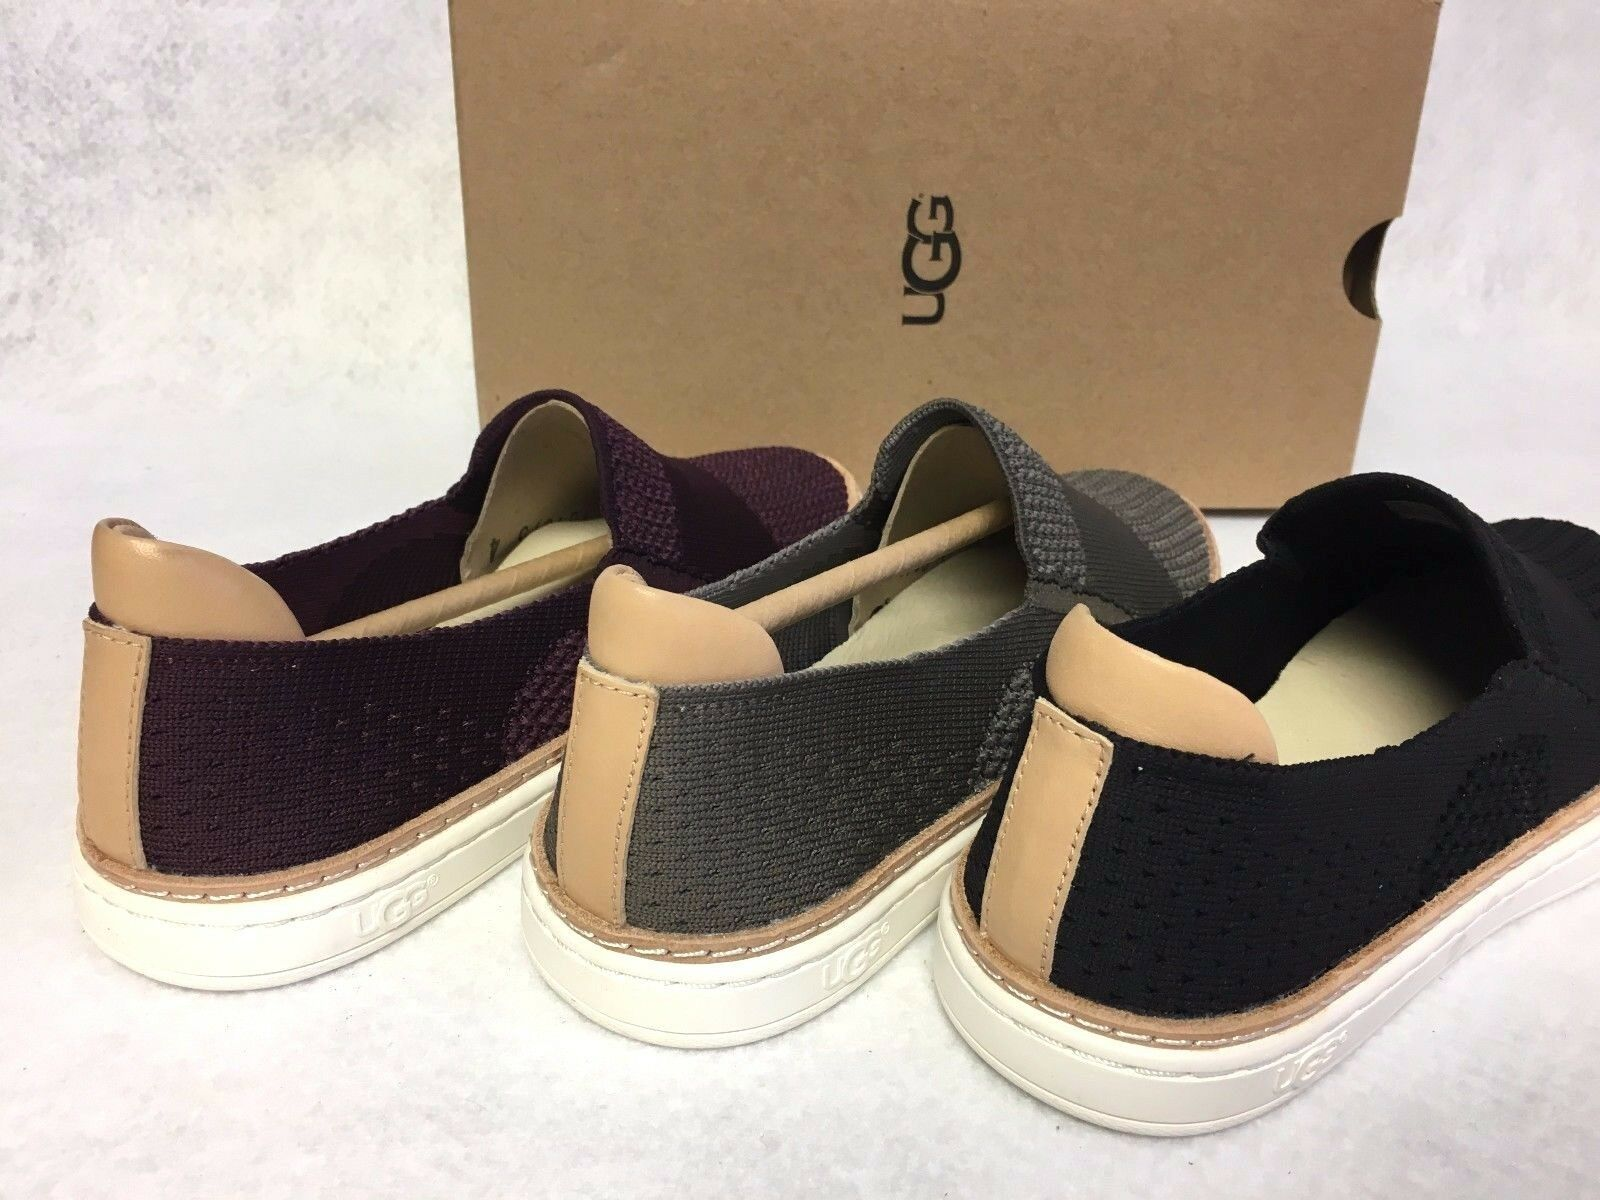 UGG Australia Sammy Slip On Hyper Weave Casual Sneakers 1016756 Black Port Slate